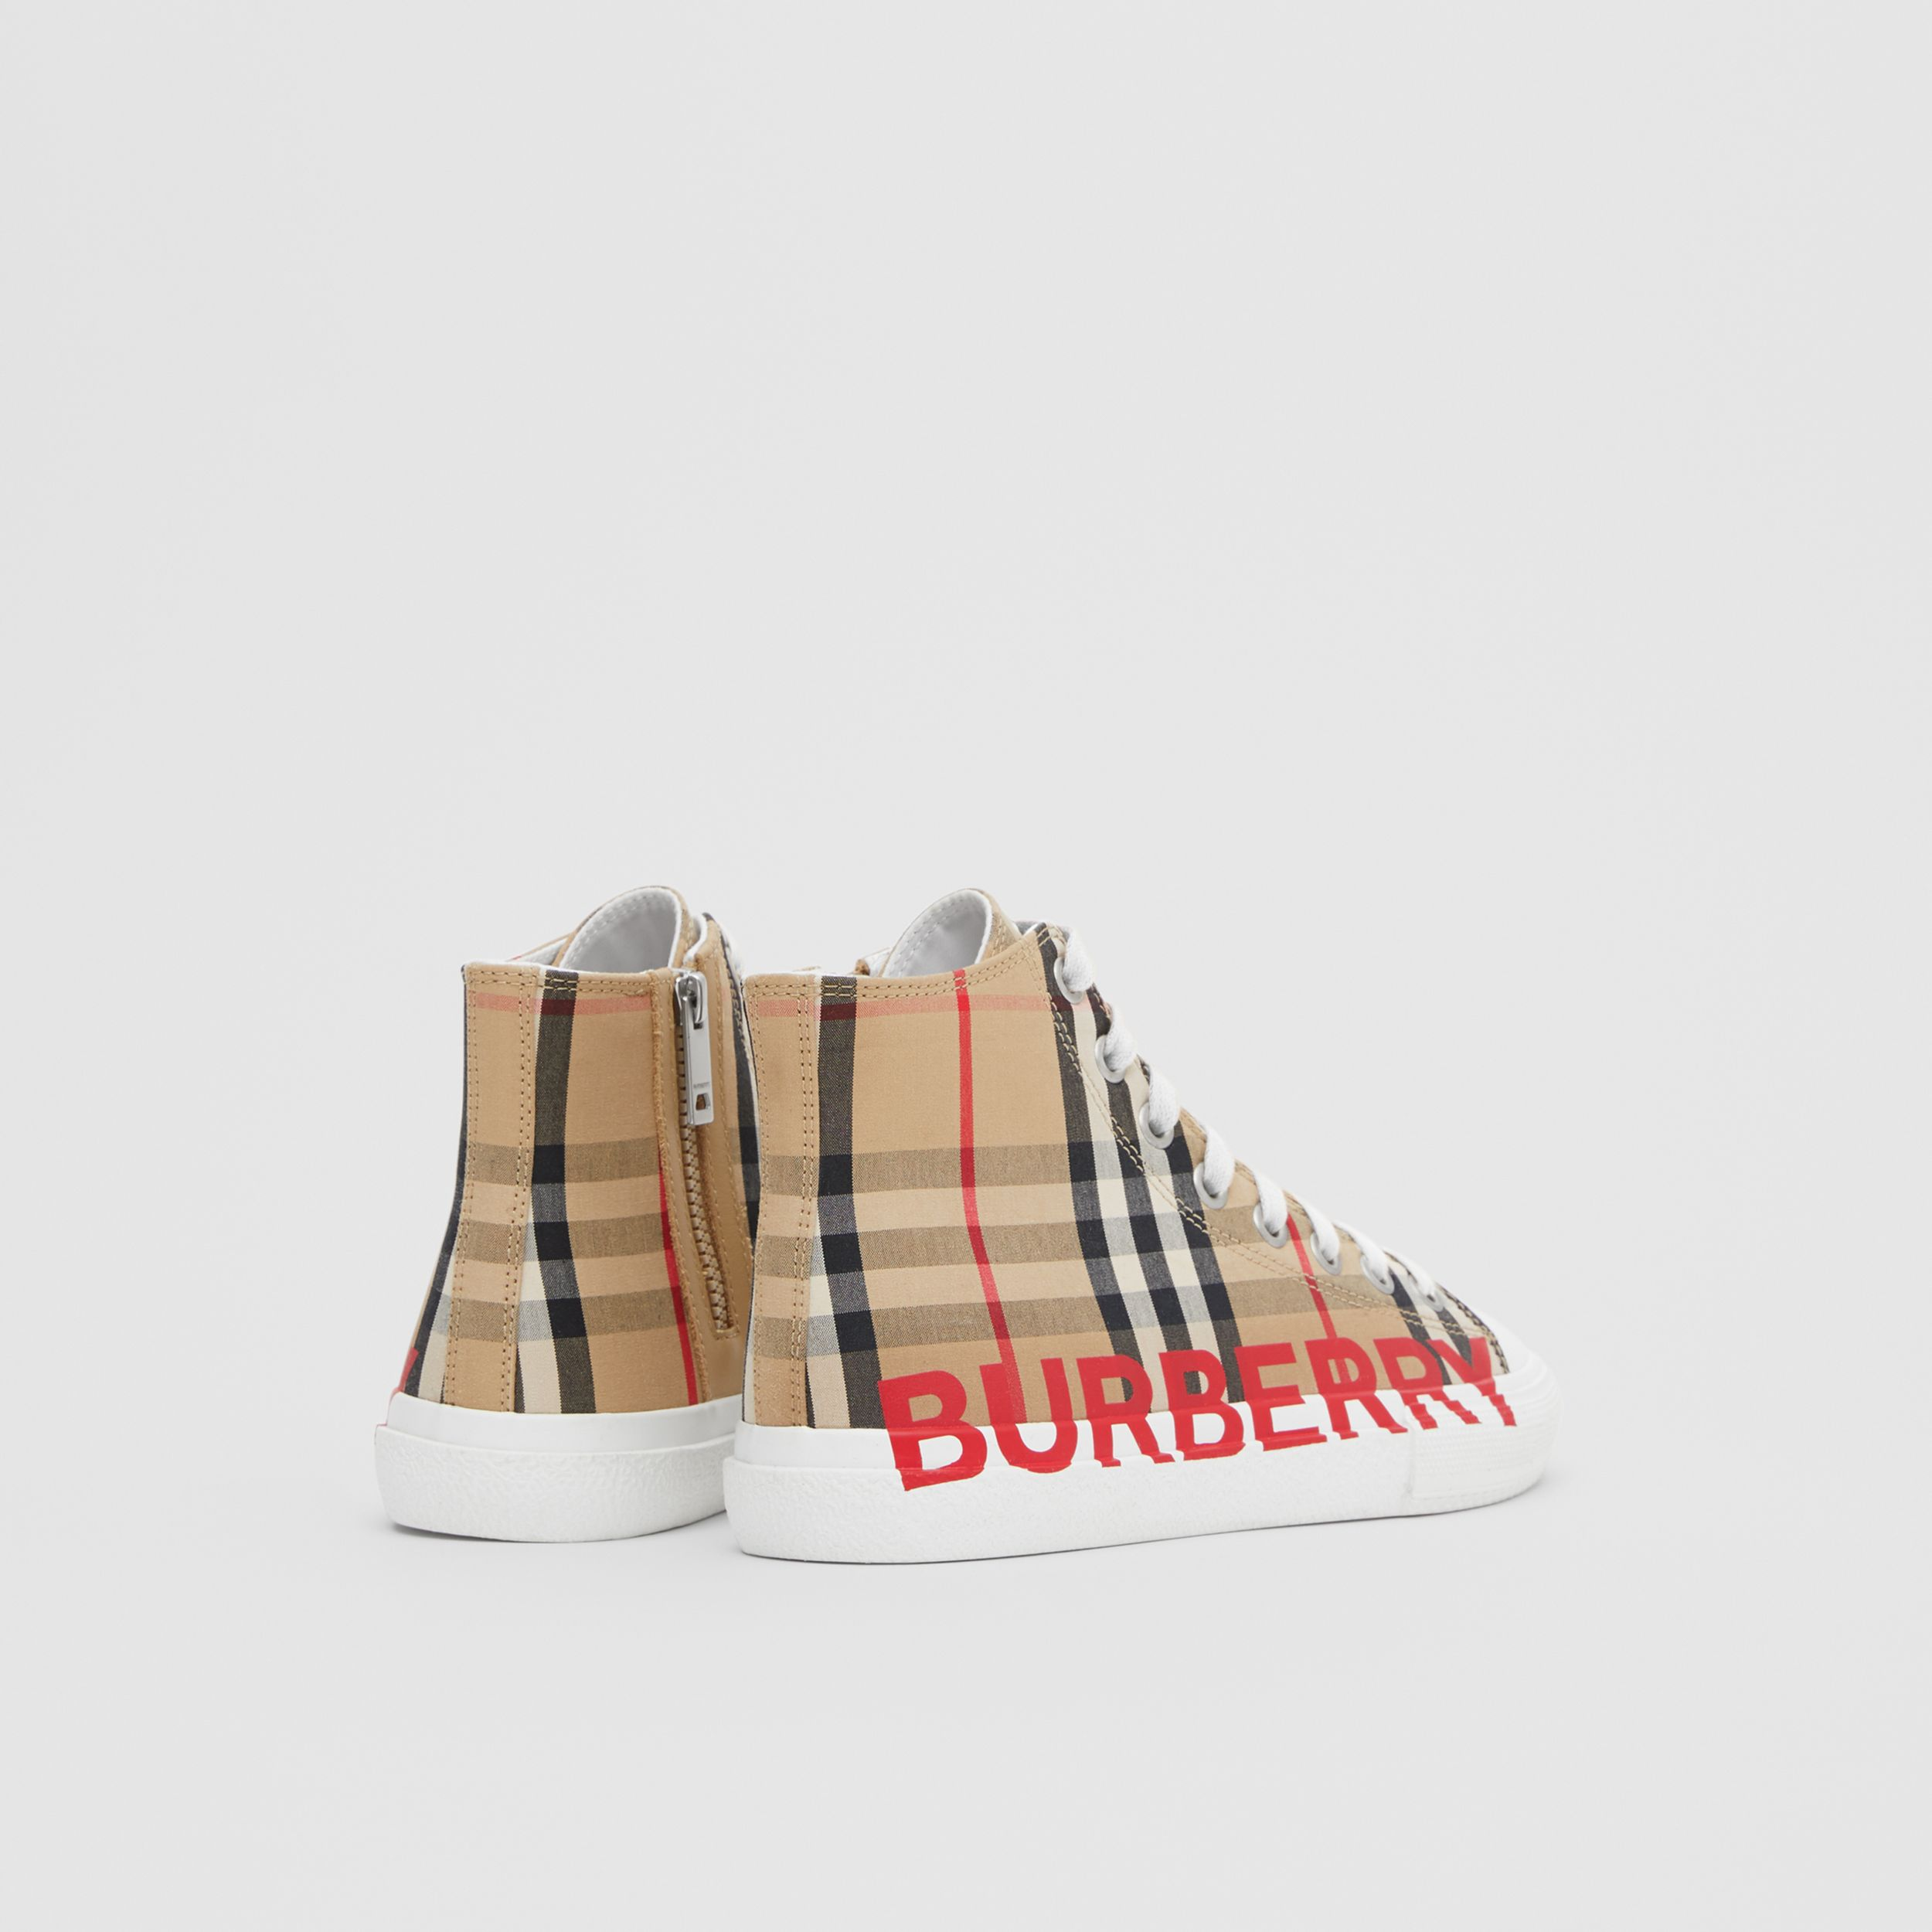 Logo Print Vintage Check High-top Sneakers in Archive Beige - Children | Burberry - 3